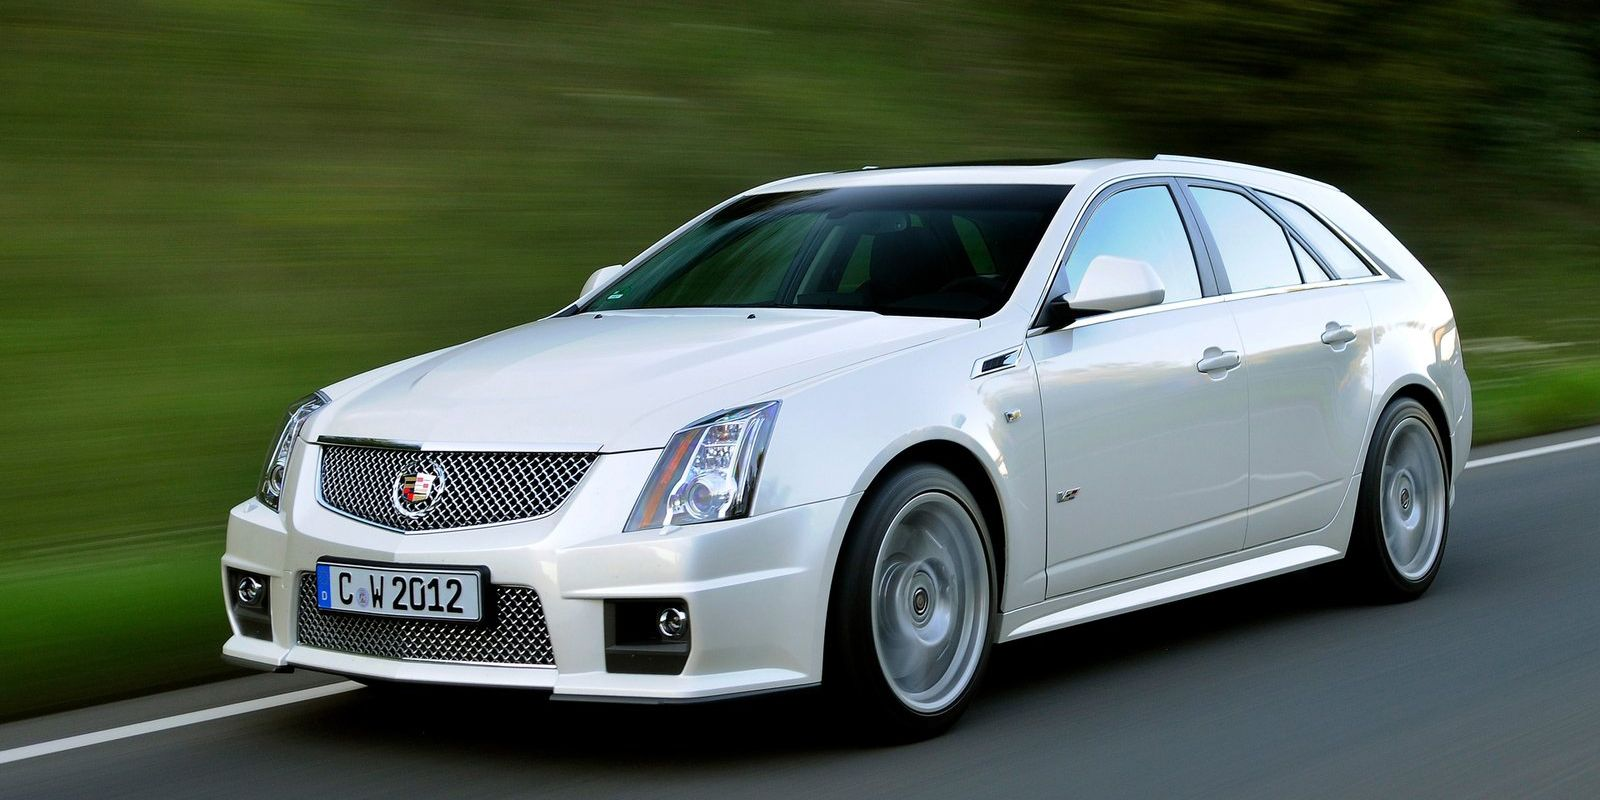 For some wonderful reason, Cadillac decided to build a wagon version of its second-generation CTS. And then it decided to sell a V version of that wagon. The CTS-V Sport Wagon never made it past that one generation, but for a few years, we were blessed with a 556-hp American station wagon.